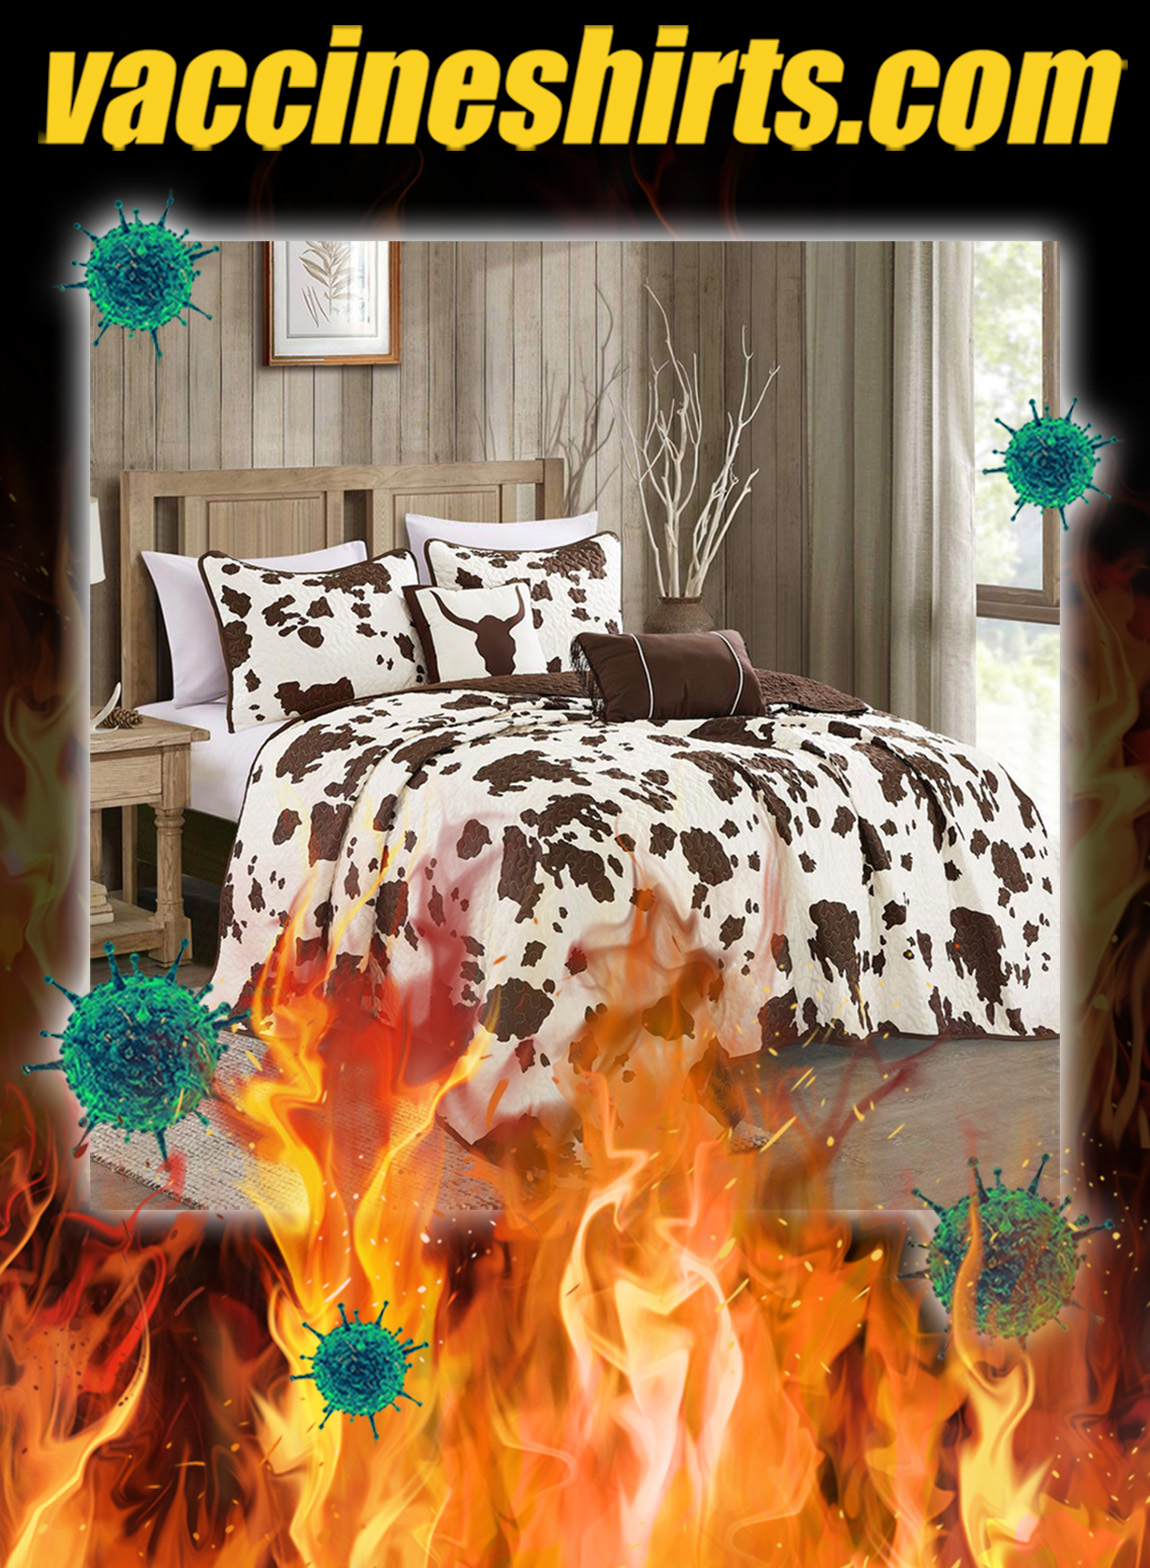 Rustic cowhide brown cow skull quilt bedding set - king